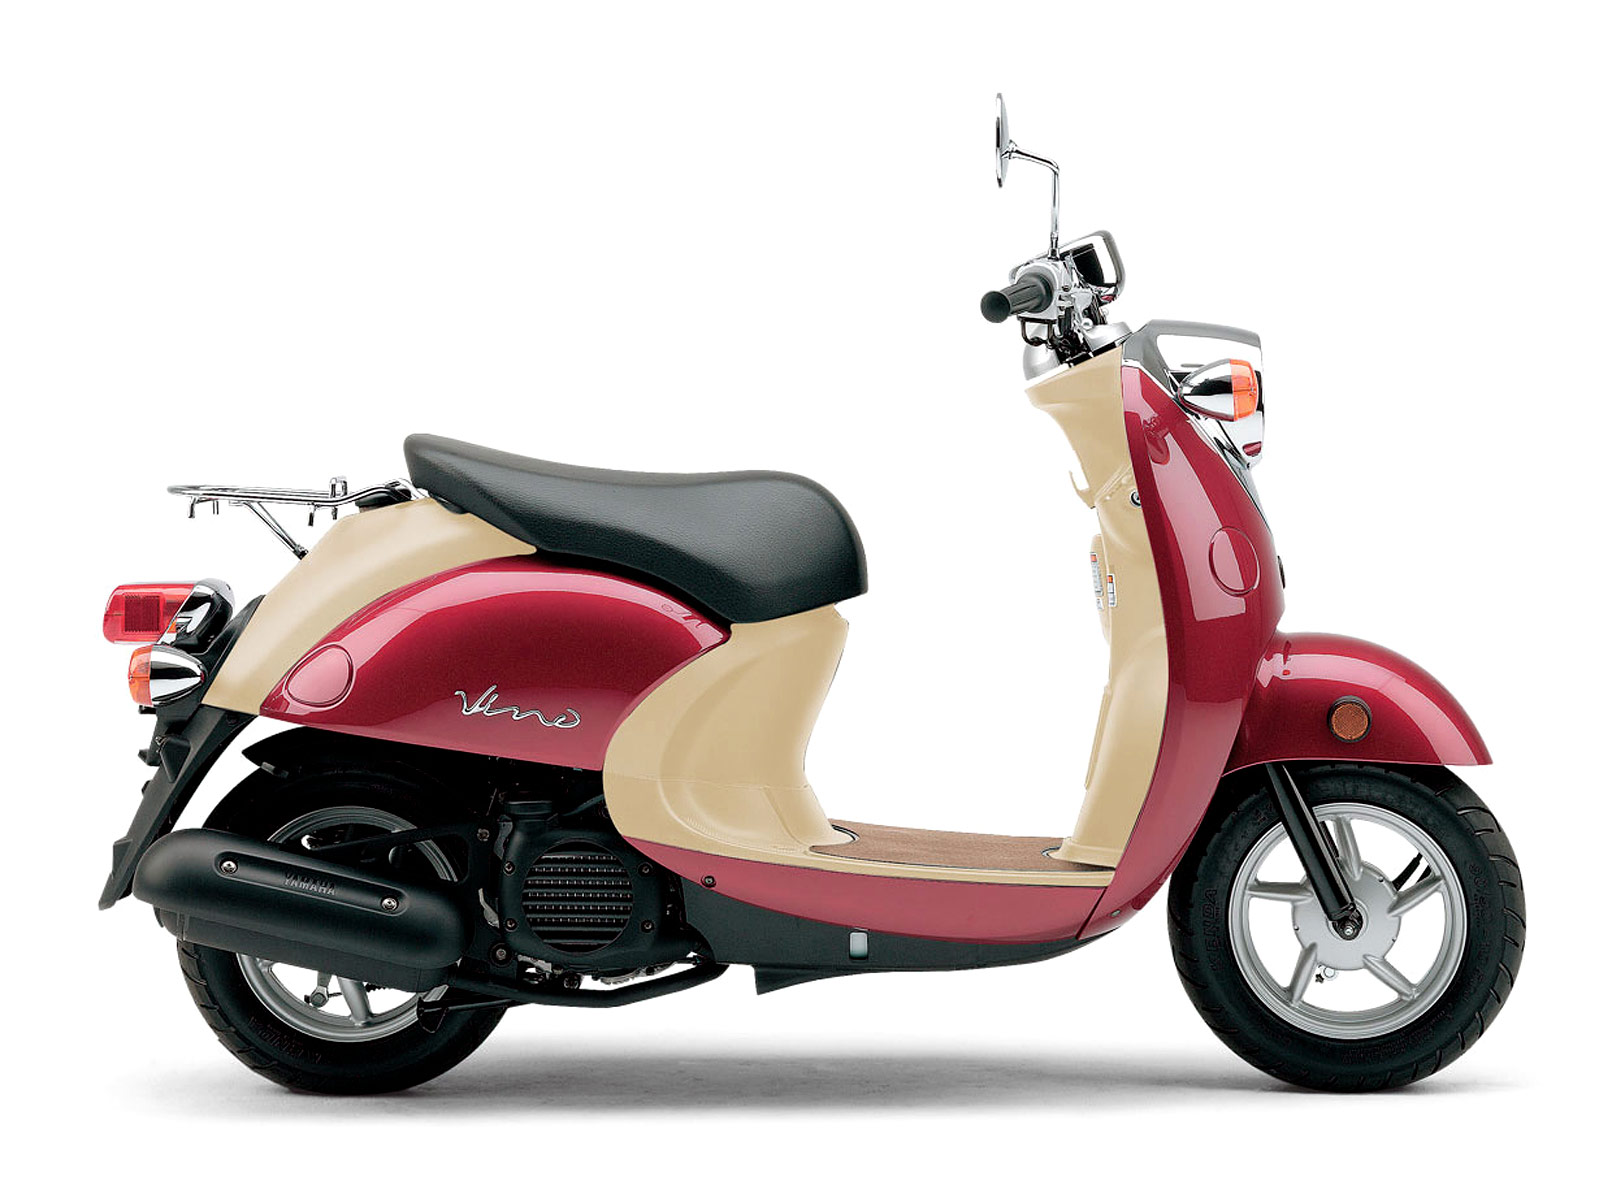 2010 yamaha vino classic 50 scooter pictures insurance info. Black Bedroom Furniture Sets. Home Design Ideas